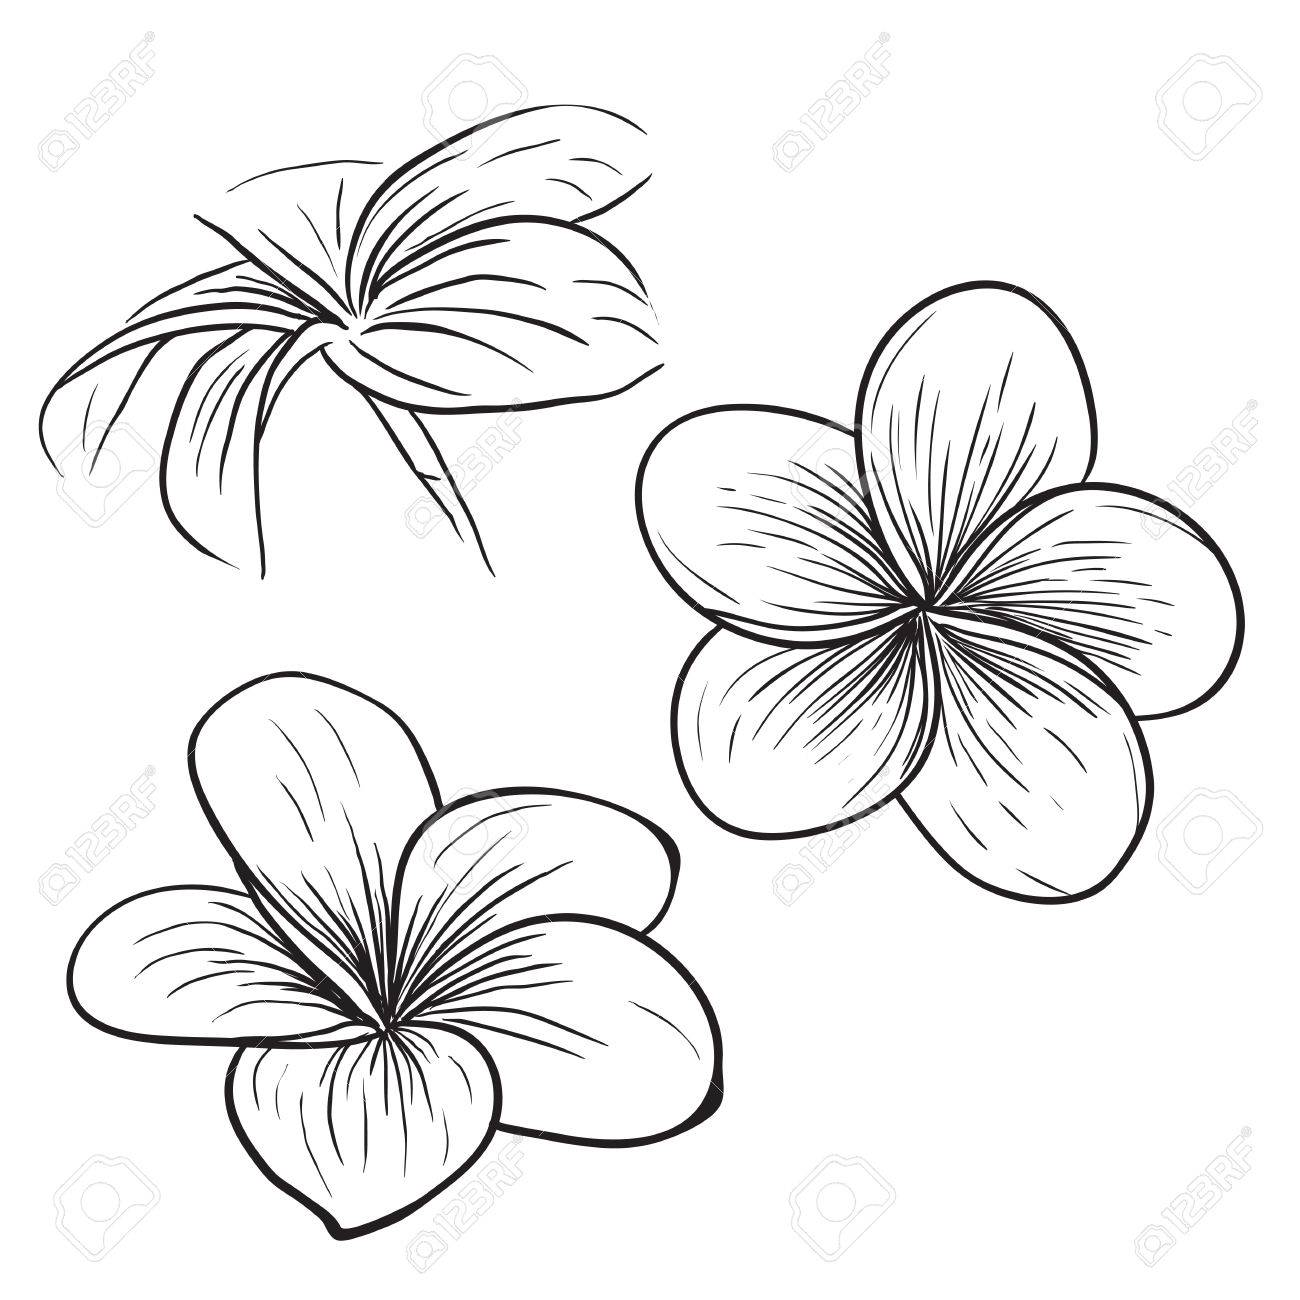 Hawaiian Flower Line Drawing : Plumeria line drawing at getdrawings free for